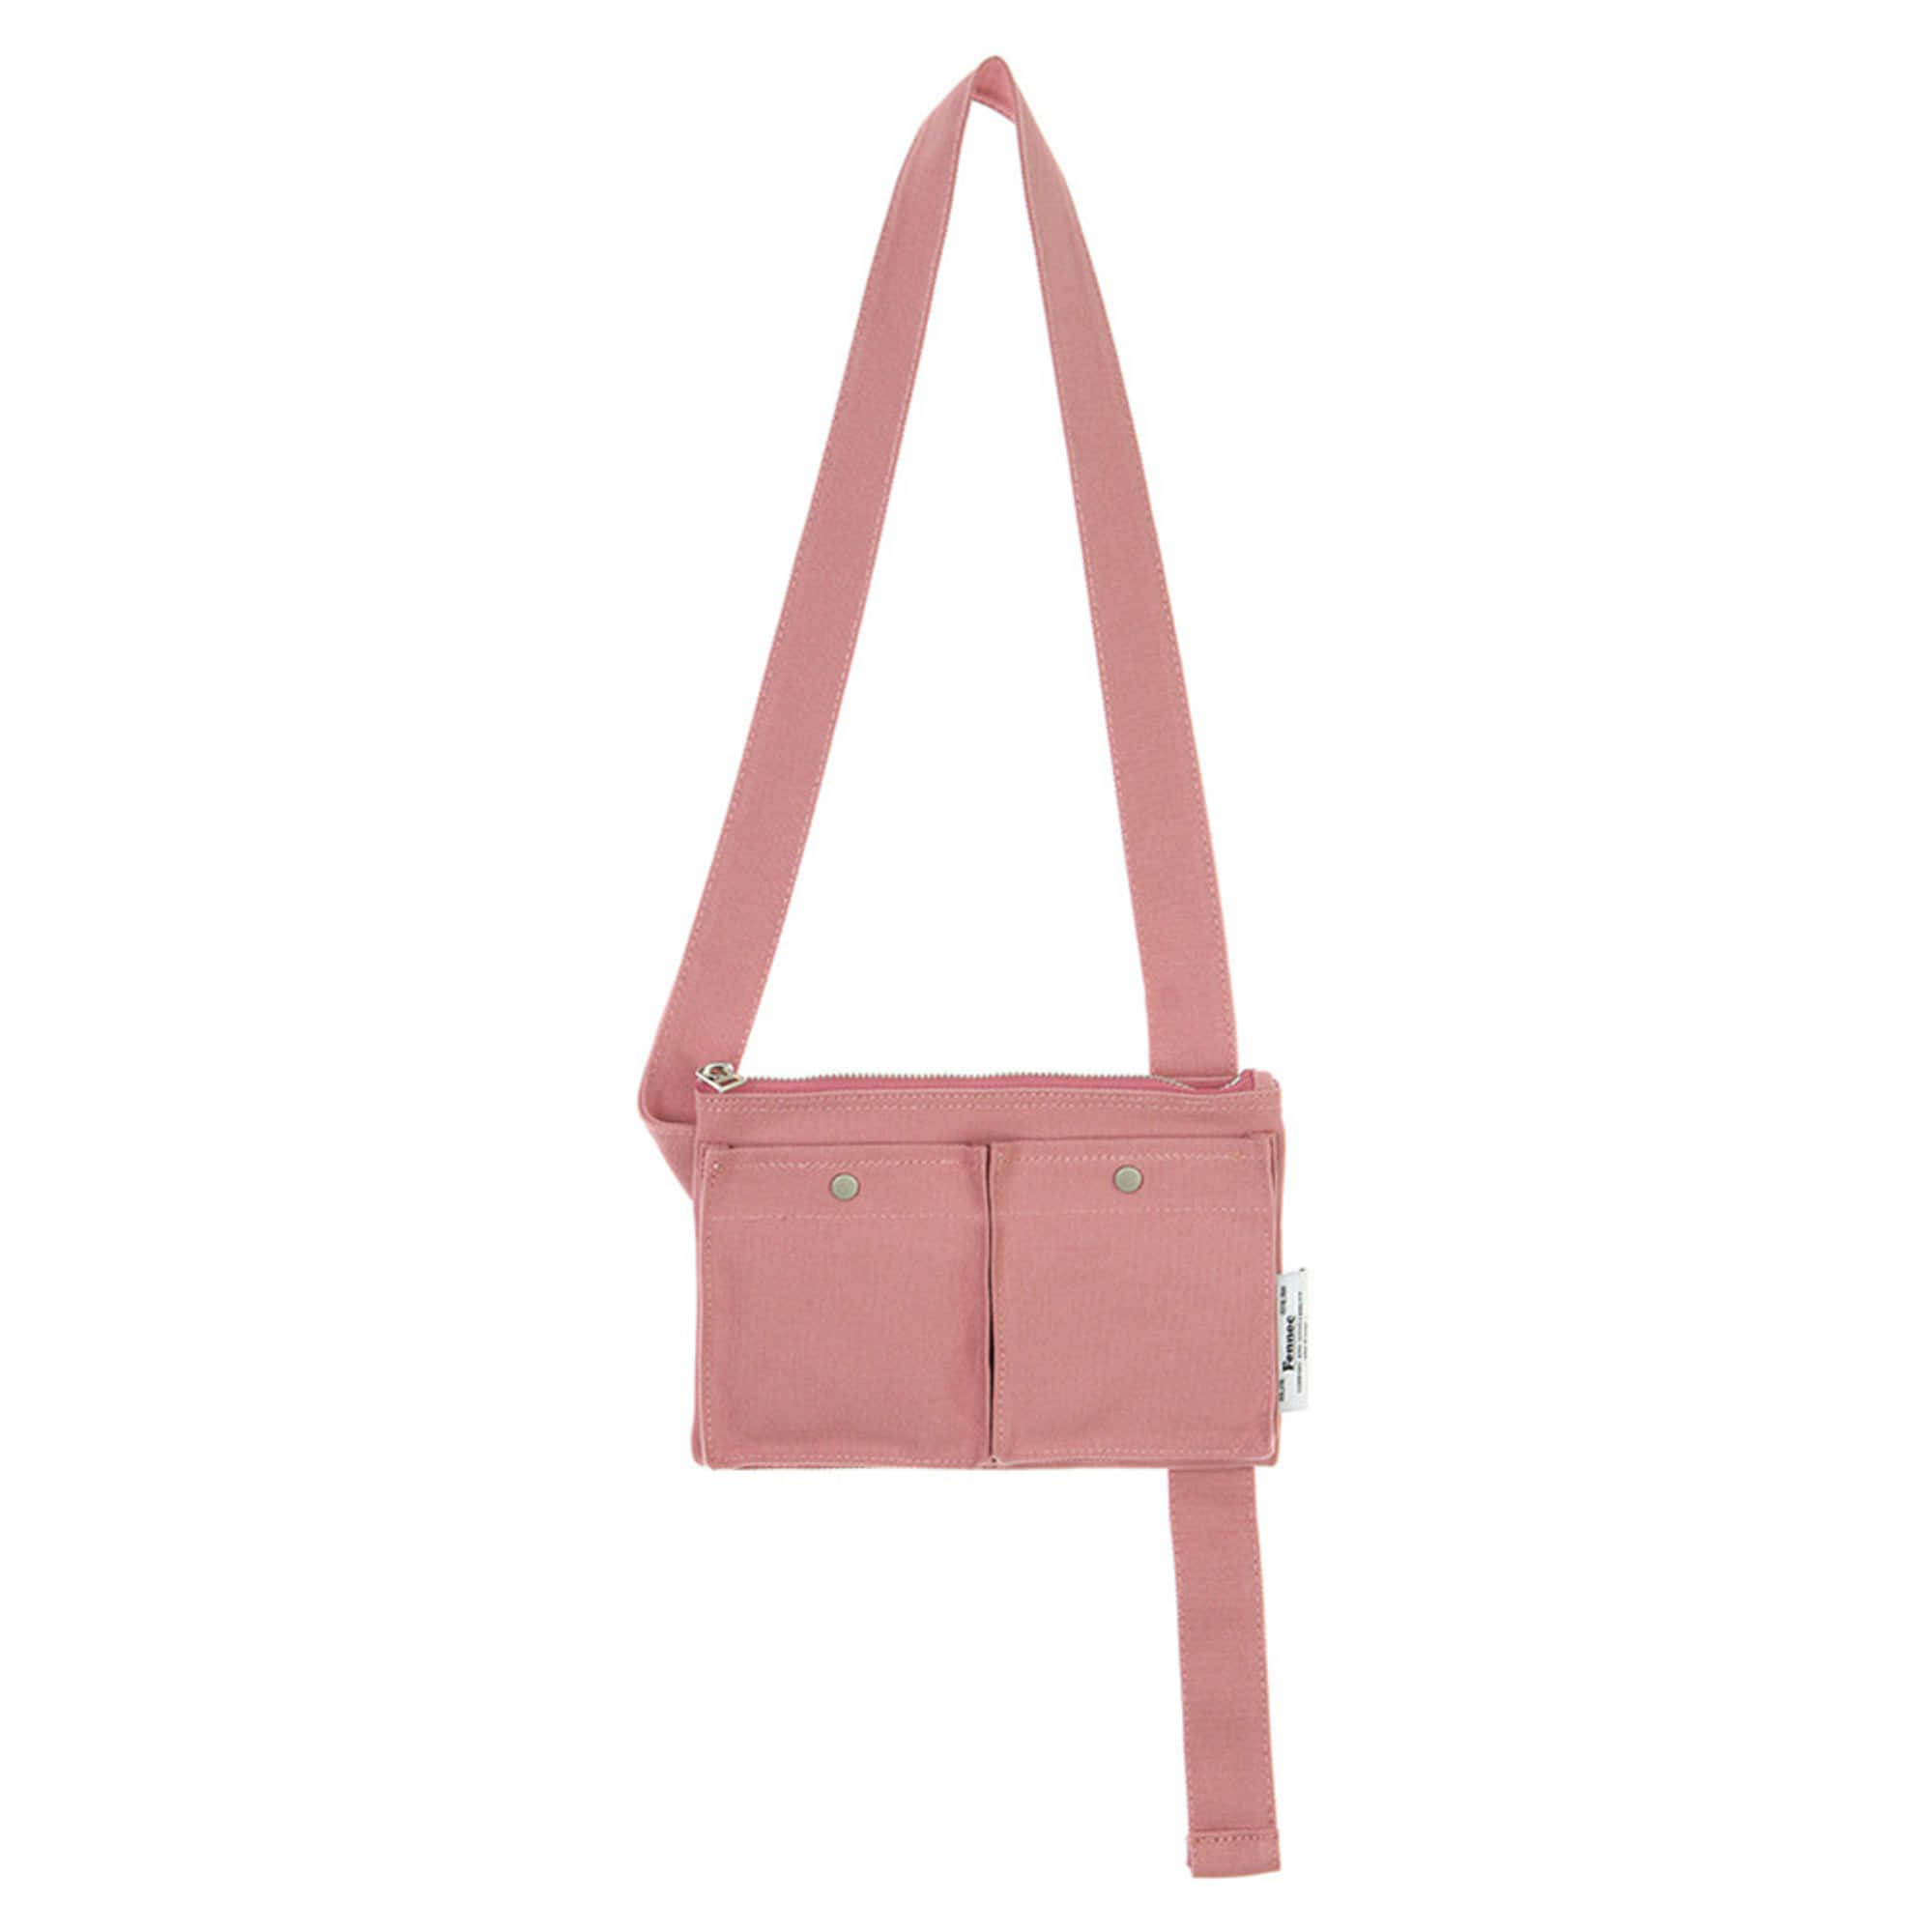 [DISCONTINUE] C&S BODY BAG - PINK